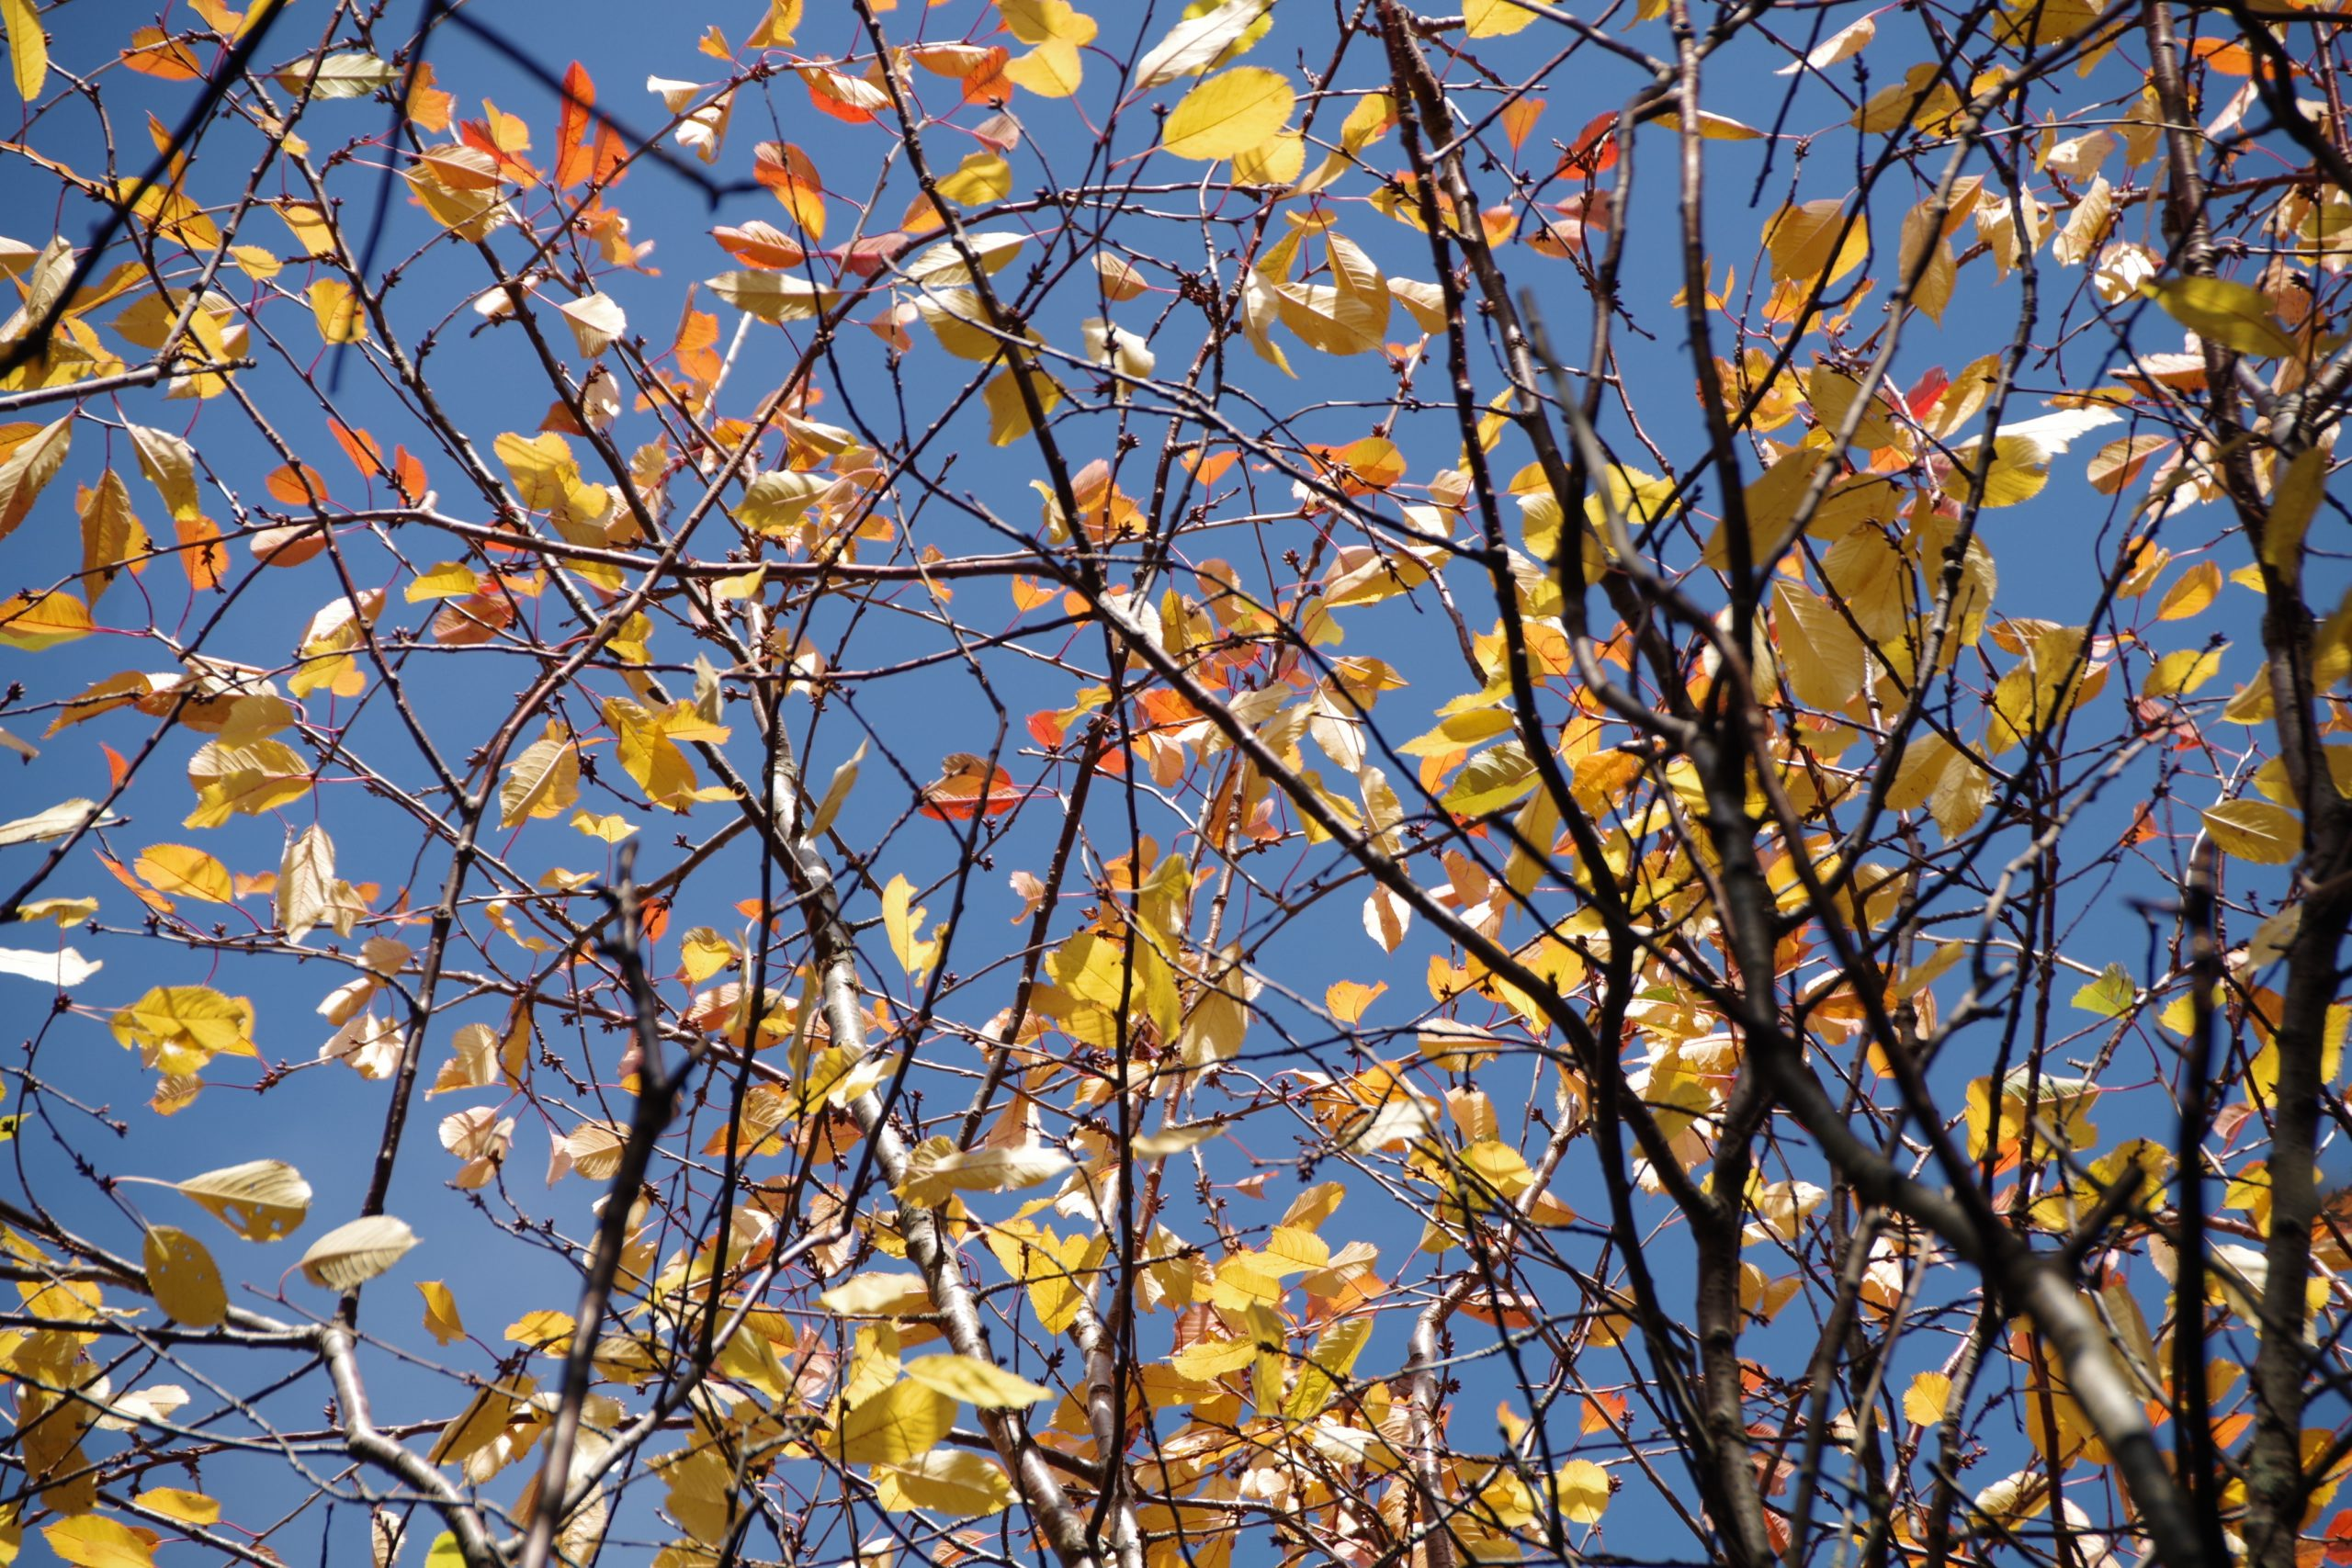 Blue sky and faded leaves